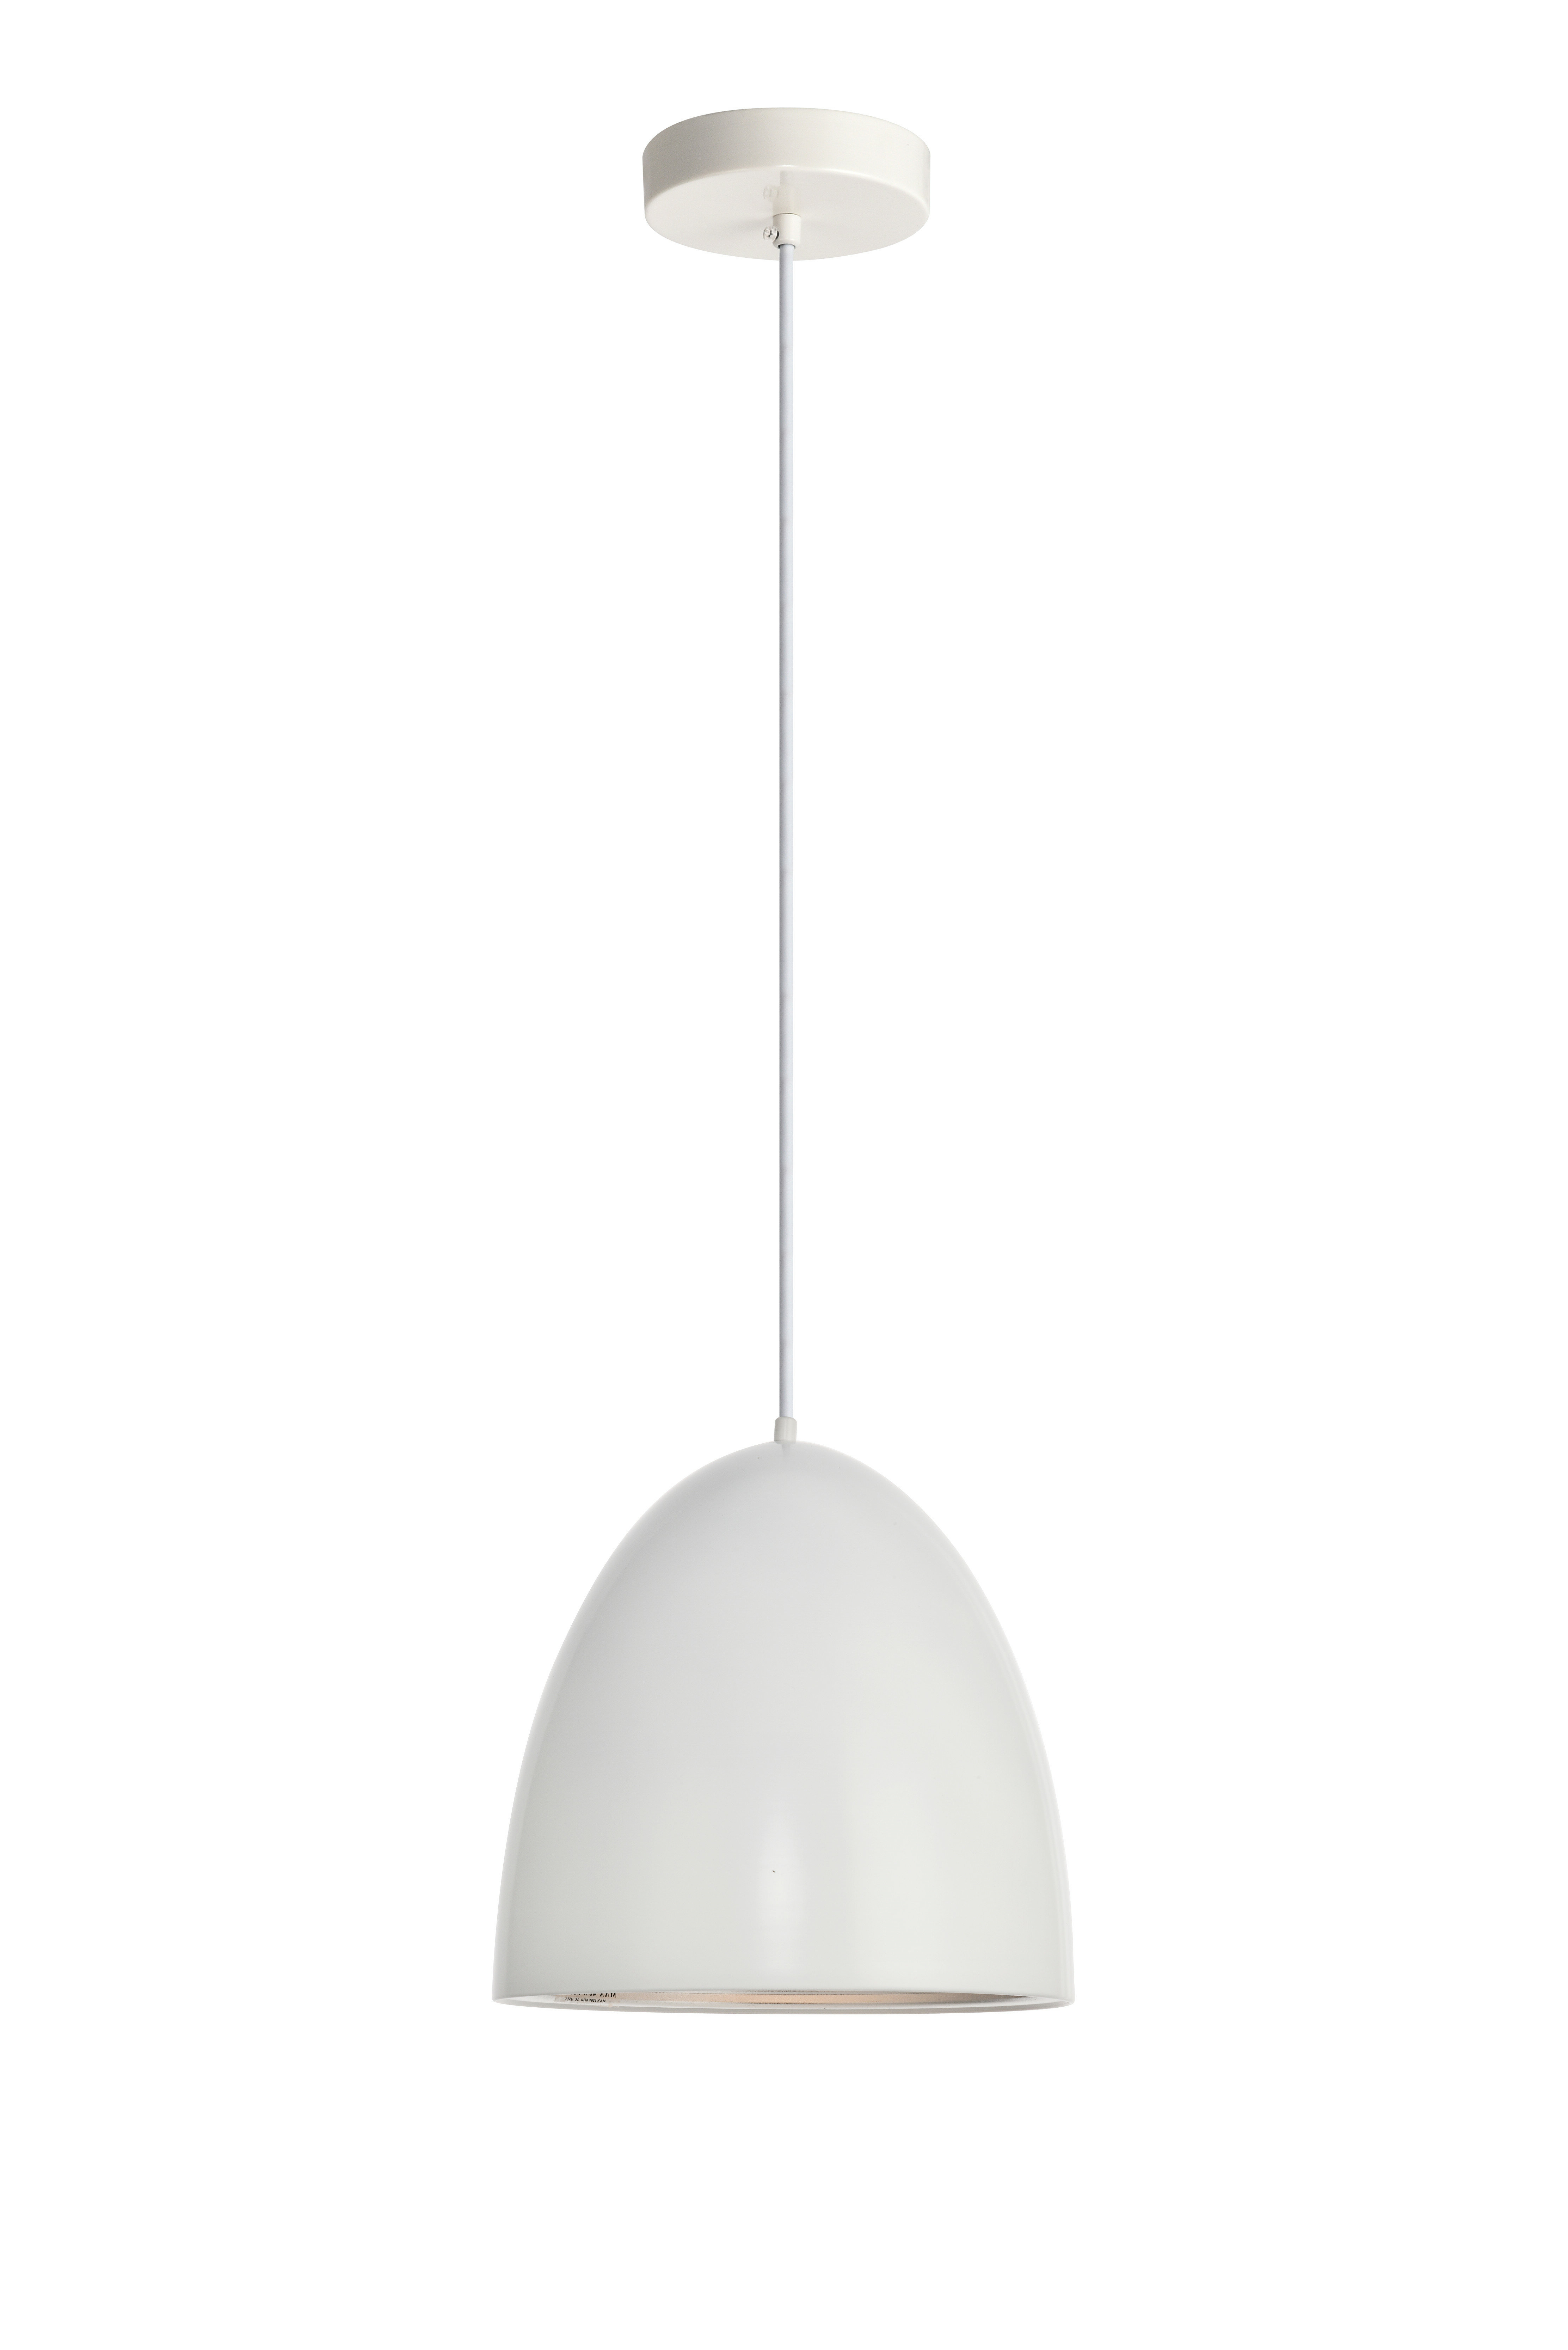 Orren Ellis Siegbald 1 Light Cone Pendant For Latest Oldbury 1 Light Single Cylinder Pendants (View 14 of 20)